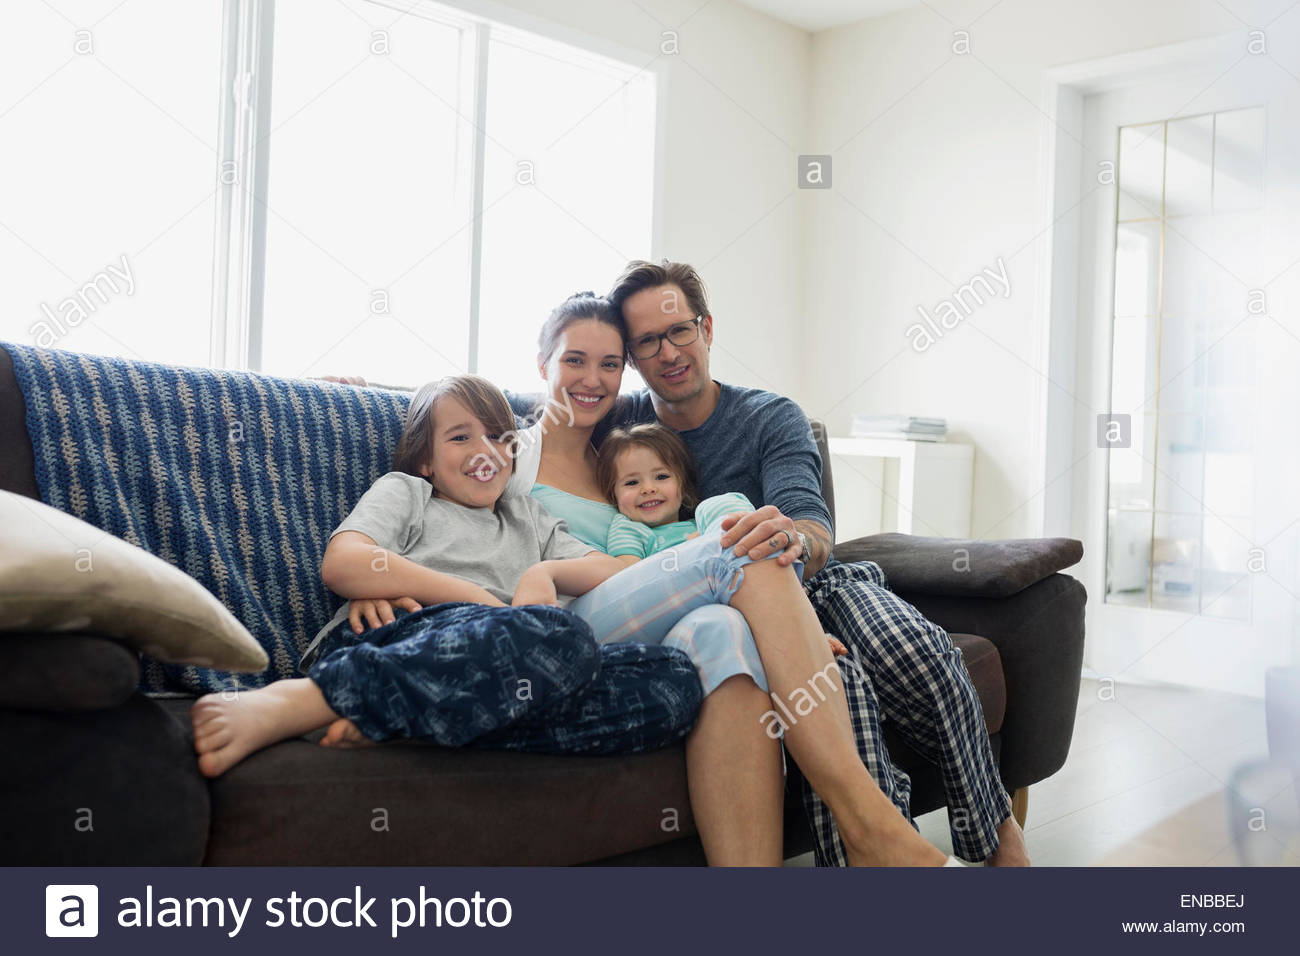 Portrait of smiling family in pajamas relaxing sofa - Stock Image